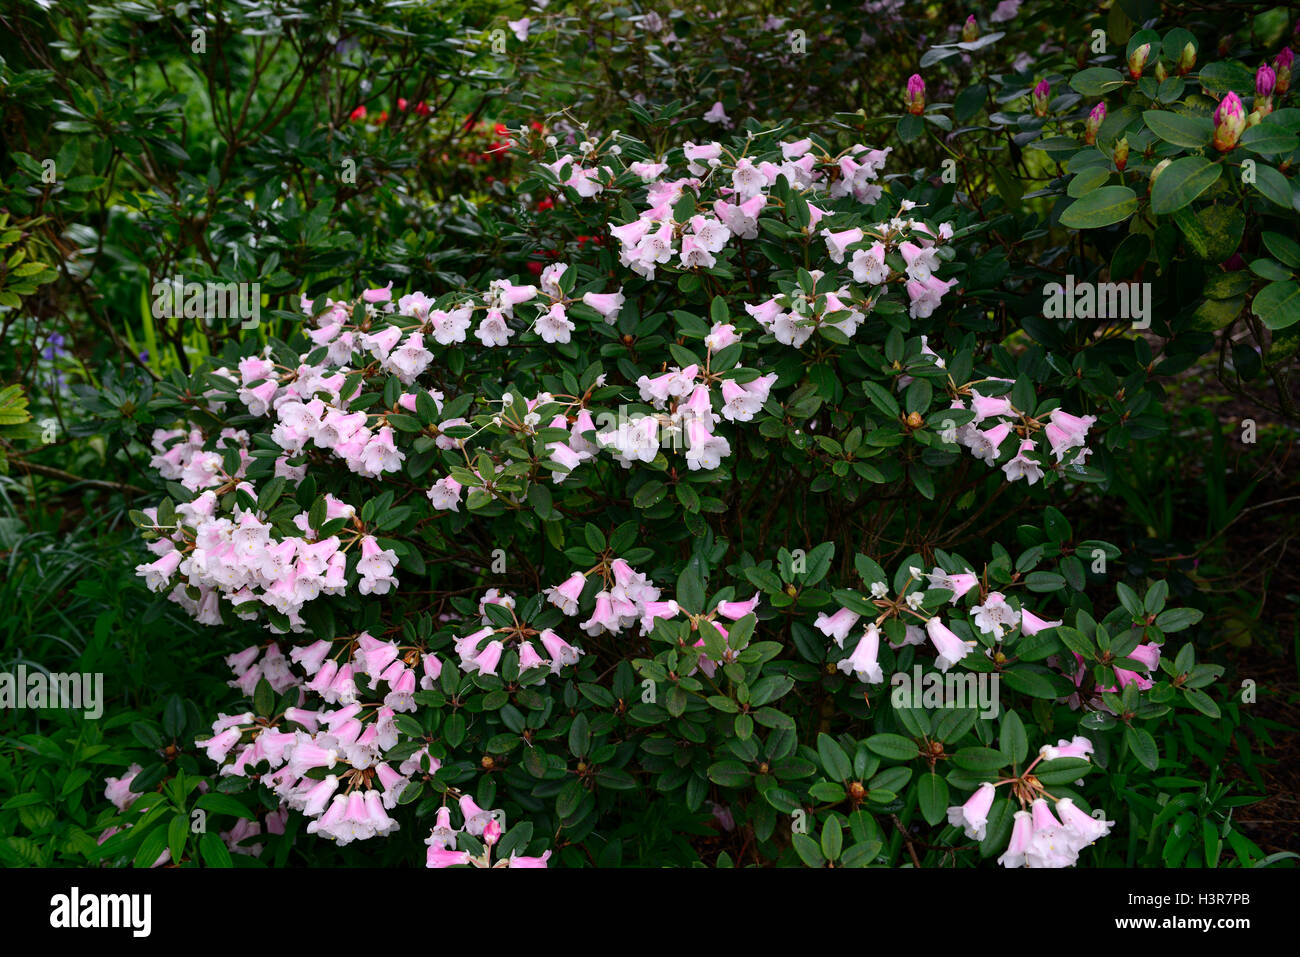 rhododendron pink flowers flowering shrub Altamont Gardens Carlow RM Floral - Stock Image